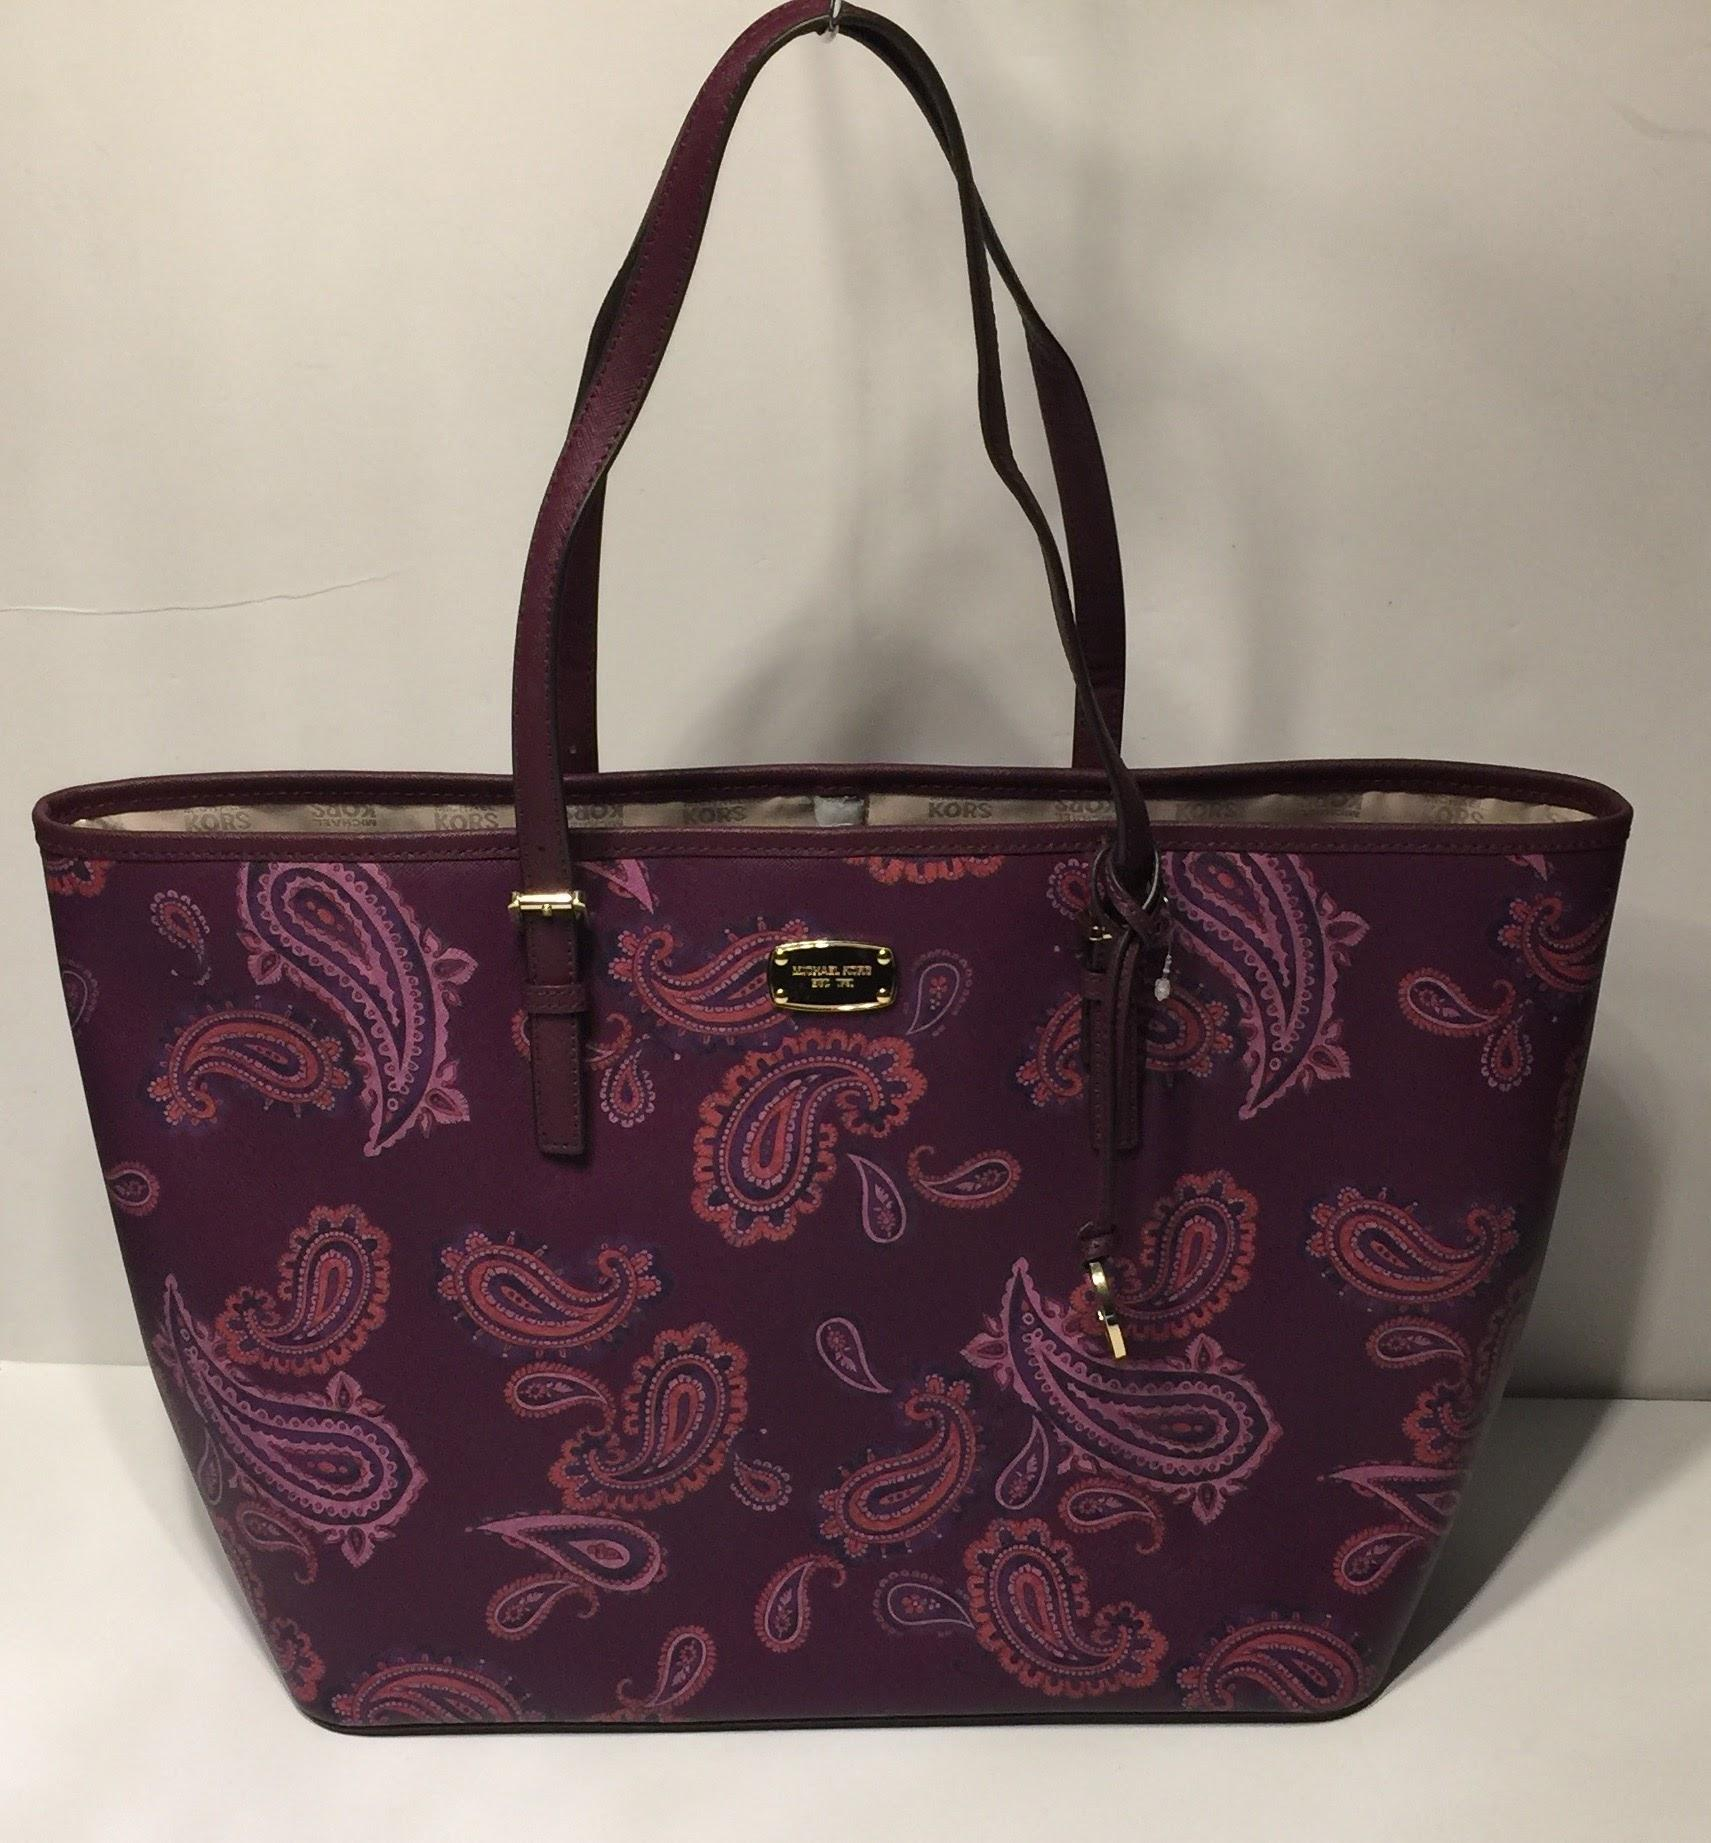 71be3608f80e ... large travel carryall tote bag paisley print plum nwt 348 39851  discount michael kors shopper purple tote in plum paisley.